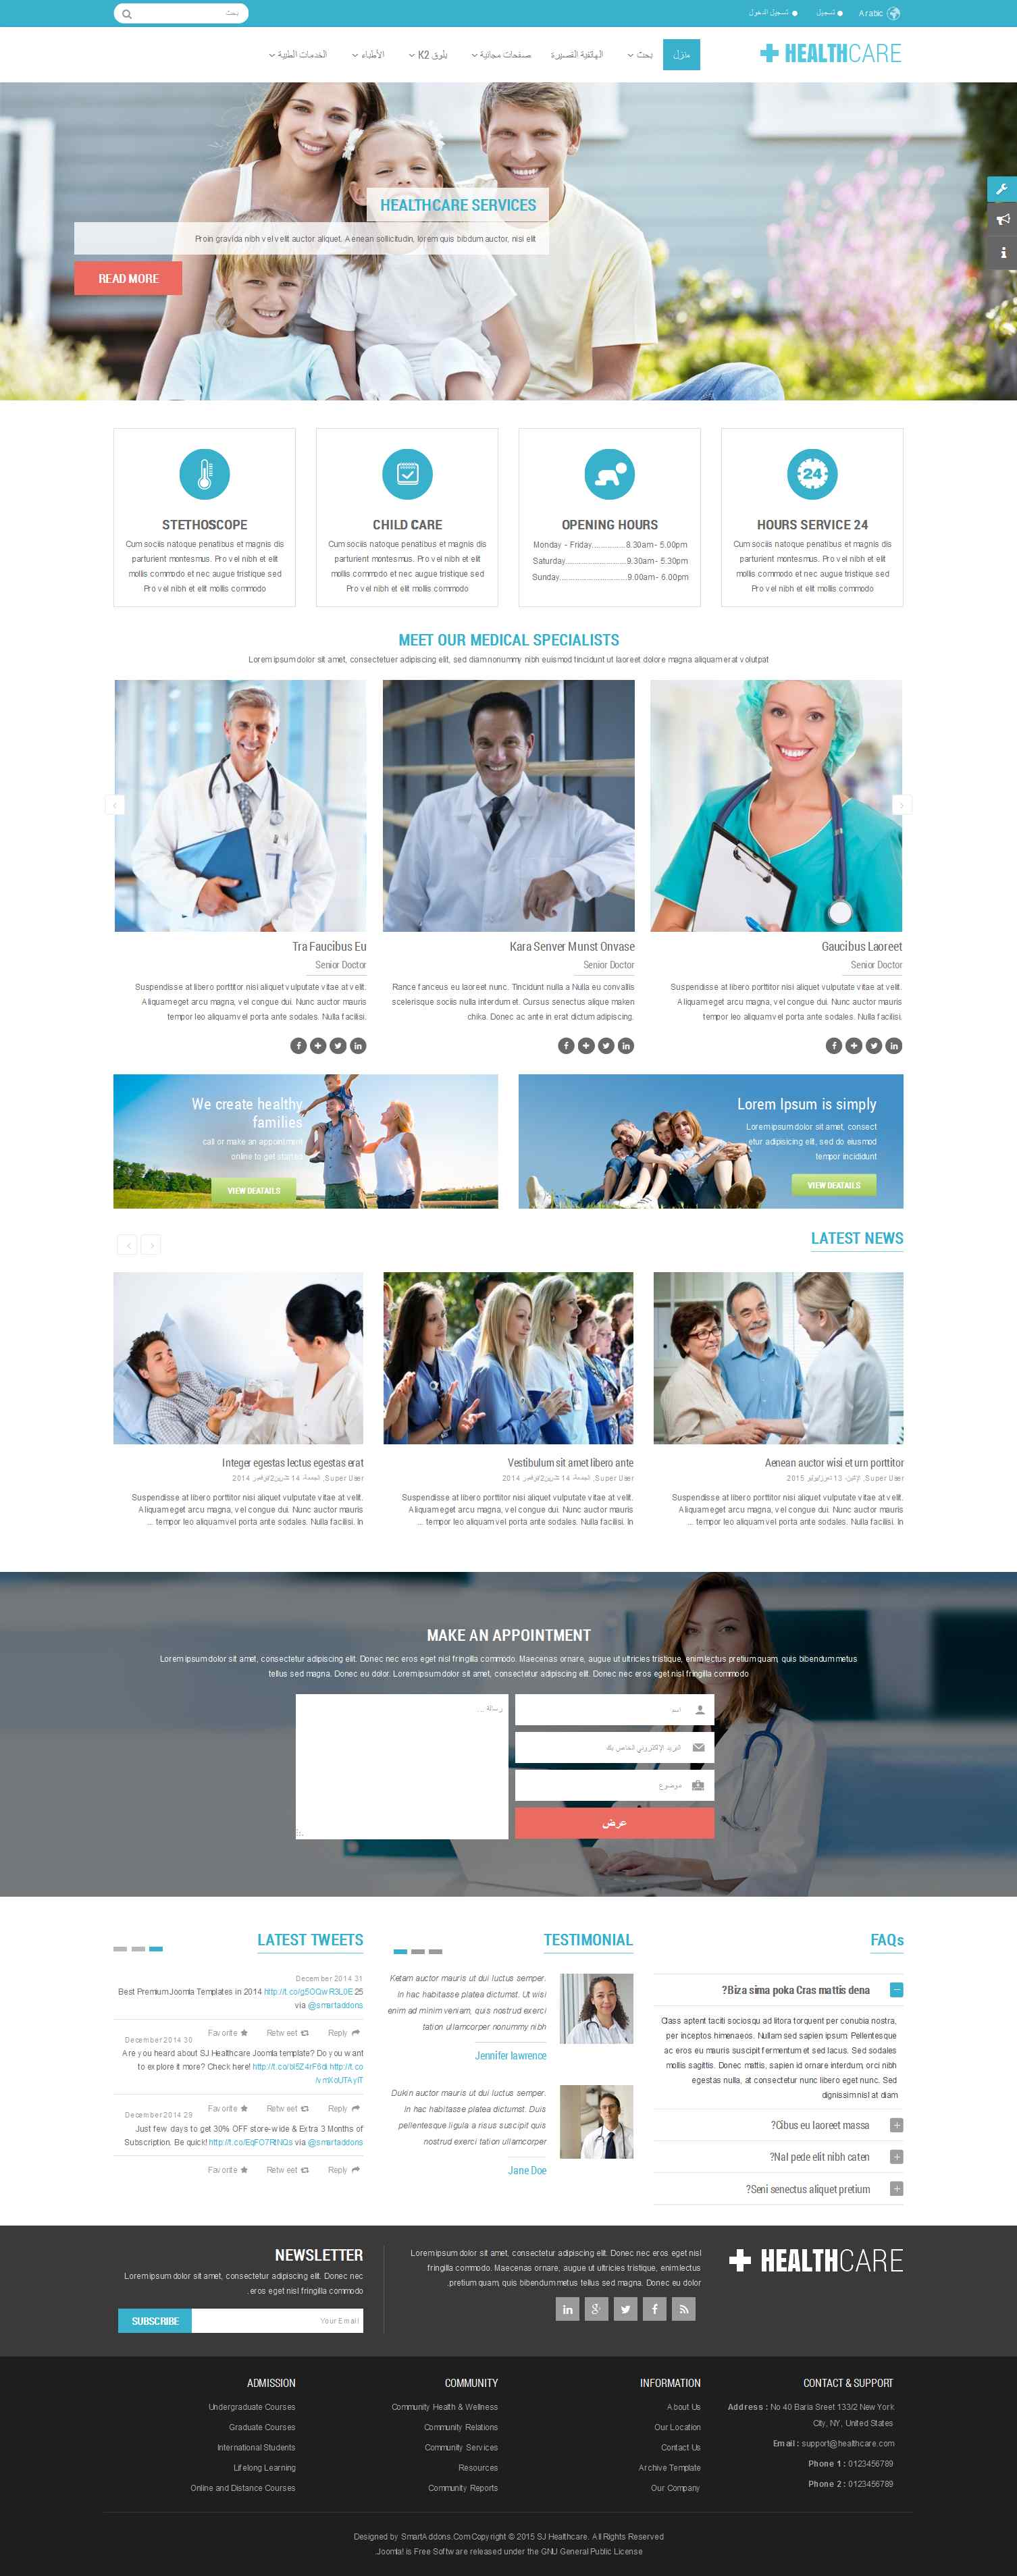 SJ Healthcare - Responsive Joomla Medical Health Template - 08_rtl-compressed.jpg